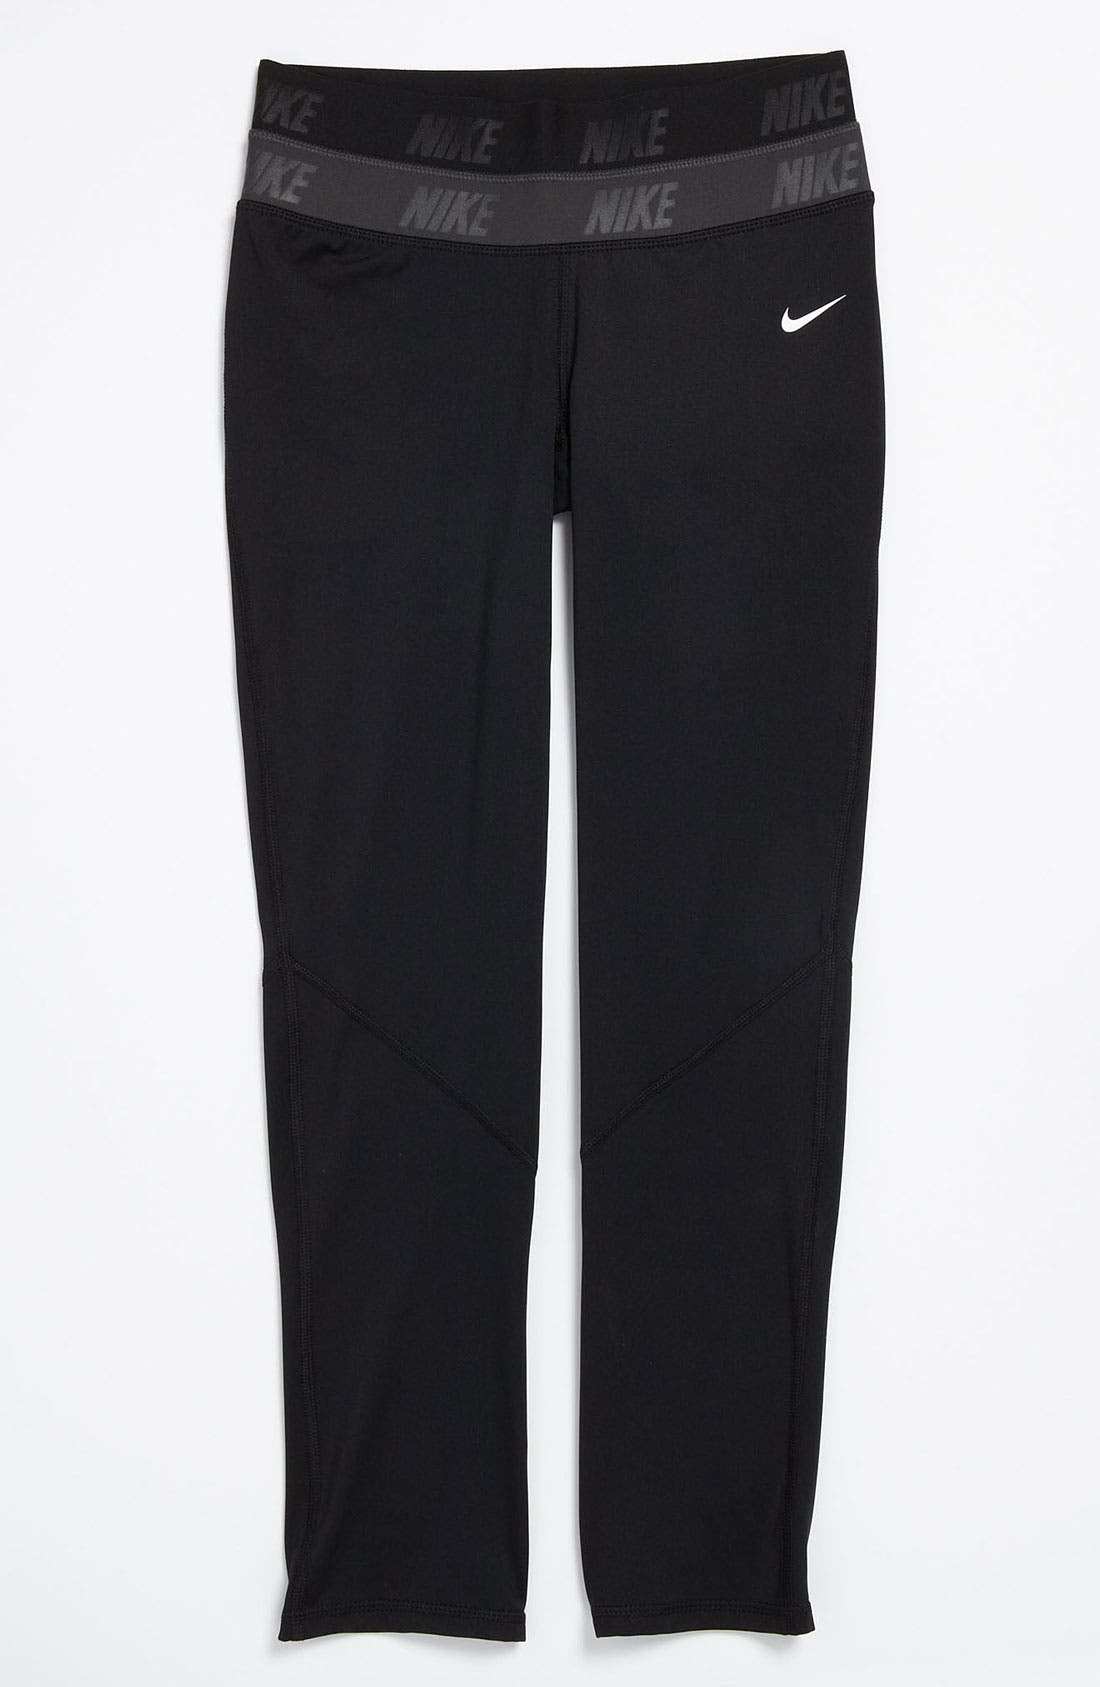 Alternate Image 1 Selected - Nike Pro 'Hyperwarm' Compression Tights (Big Girls)